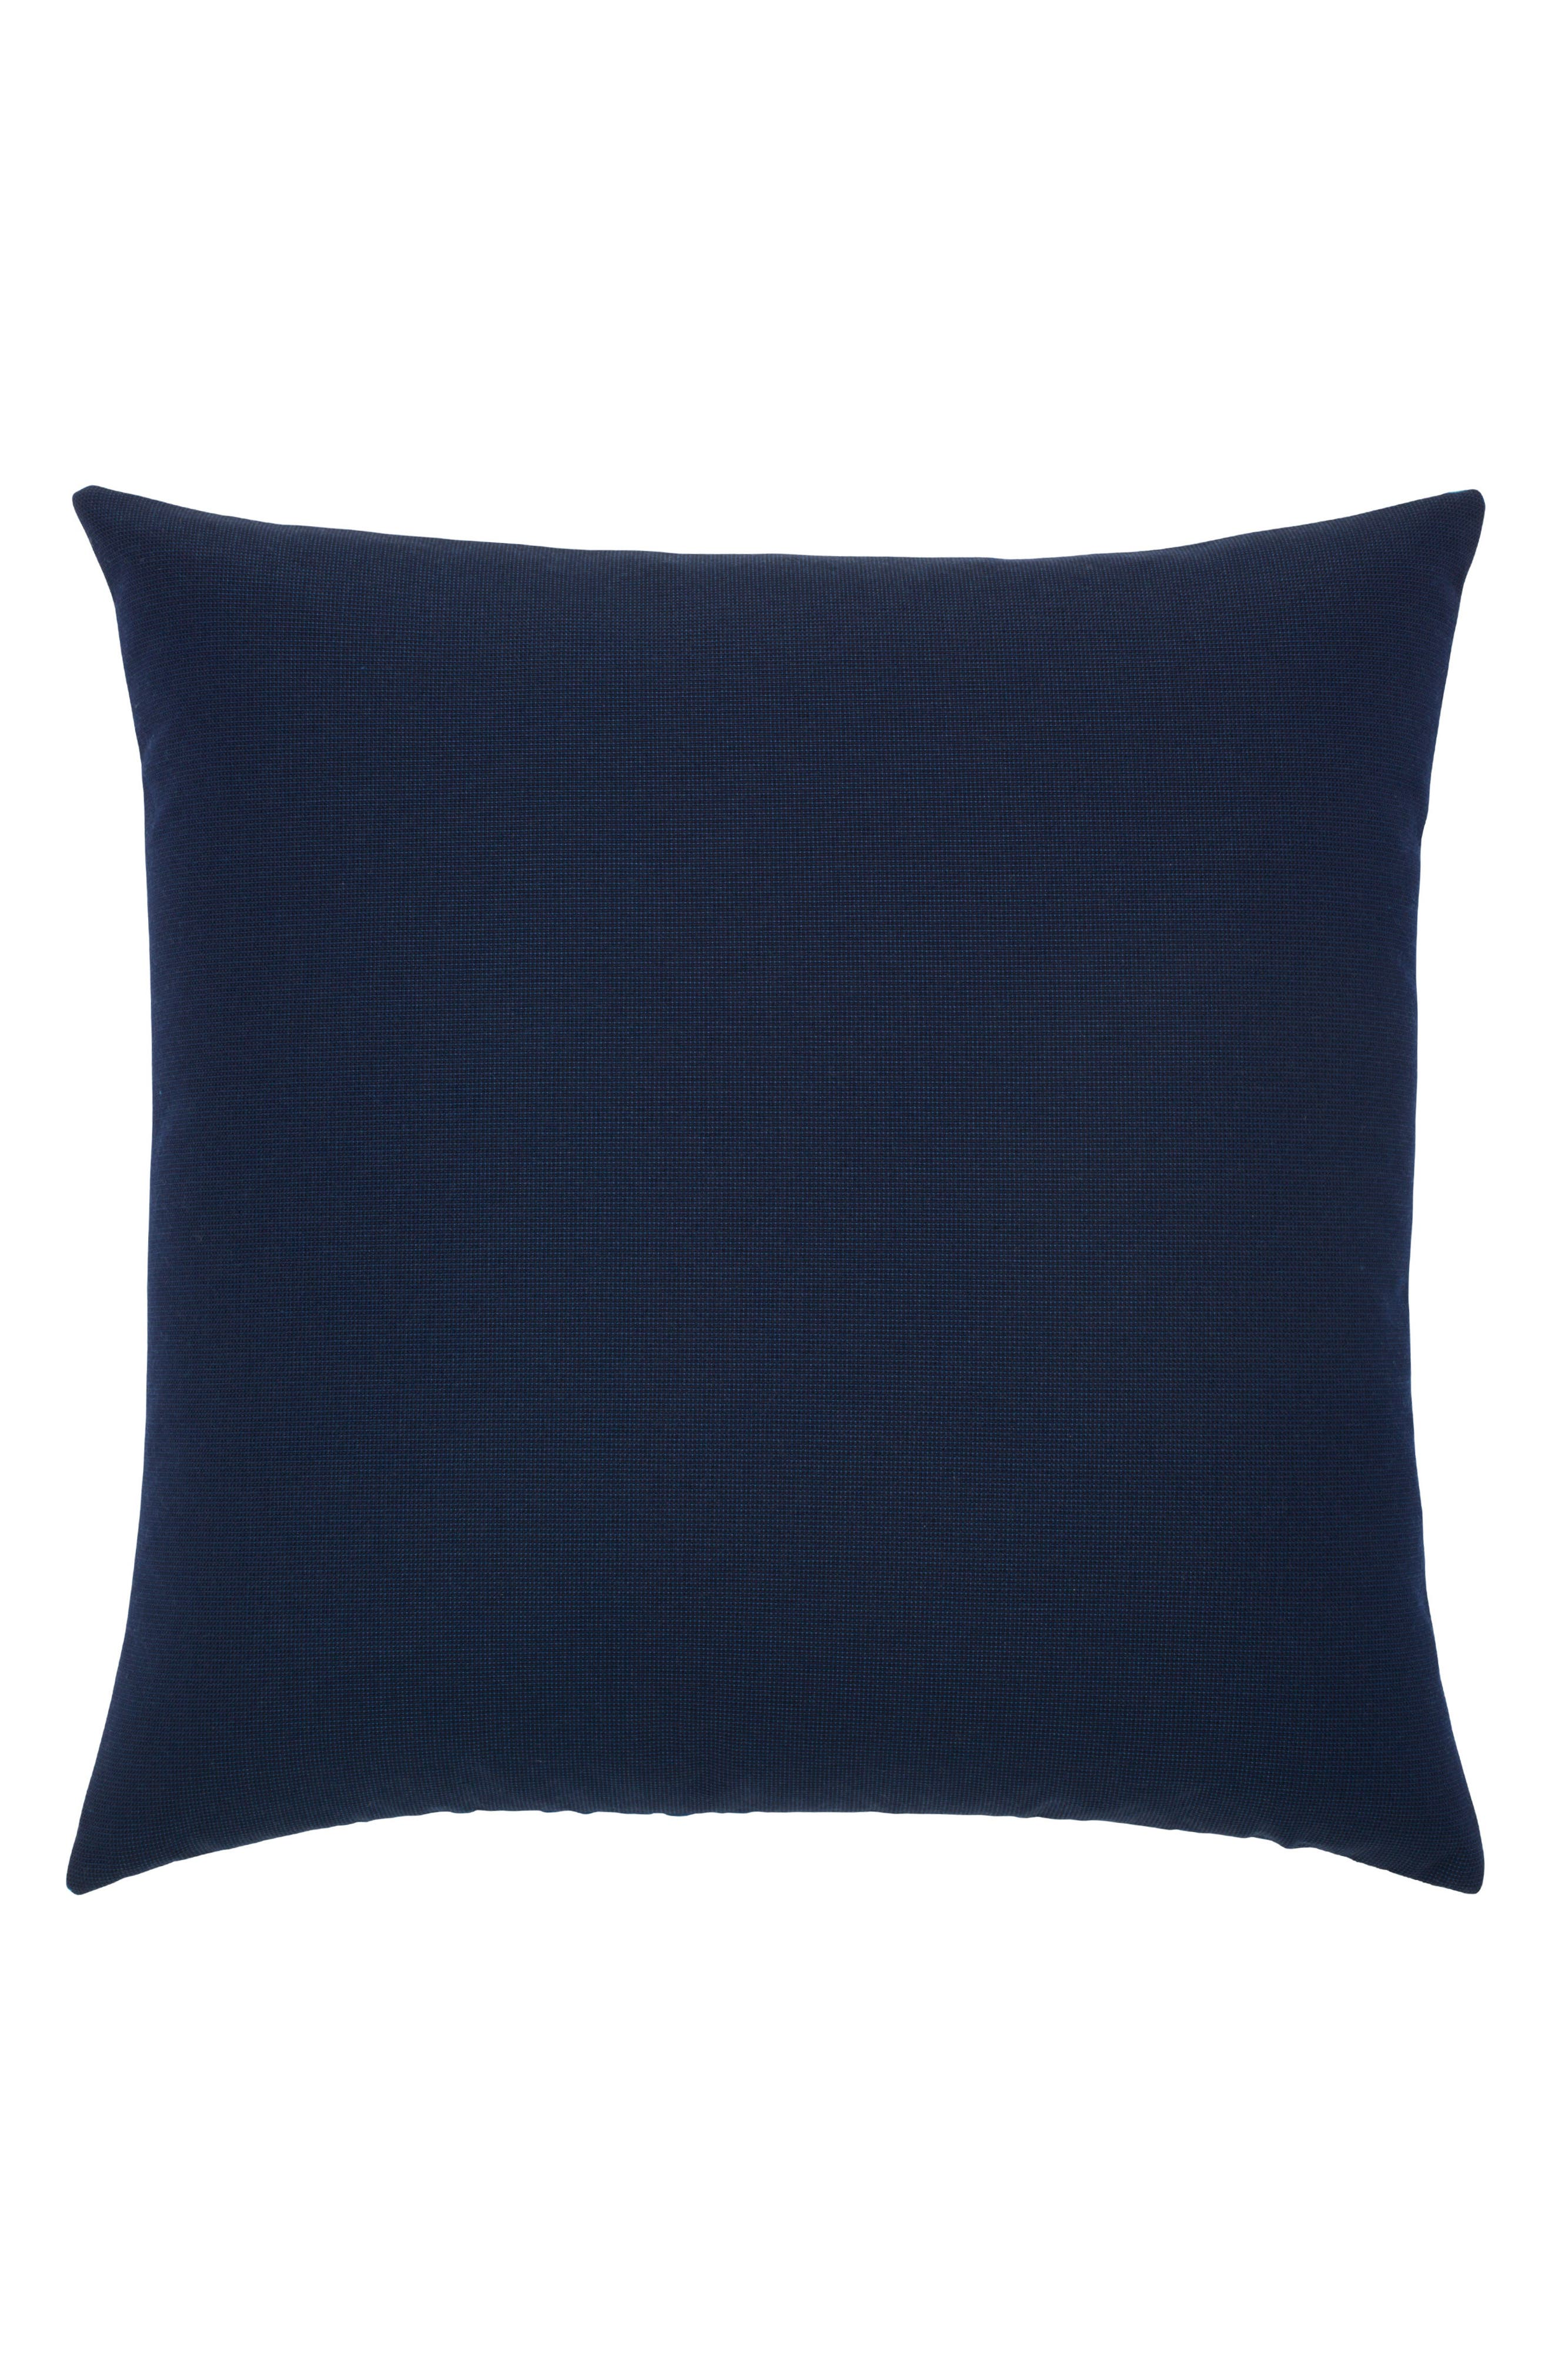 Optic Azure Indoor/Outdoor Accent Pillow,                             Alternate thumbnail 2, color,                             BLUE